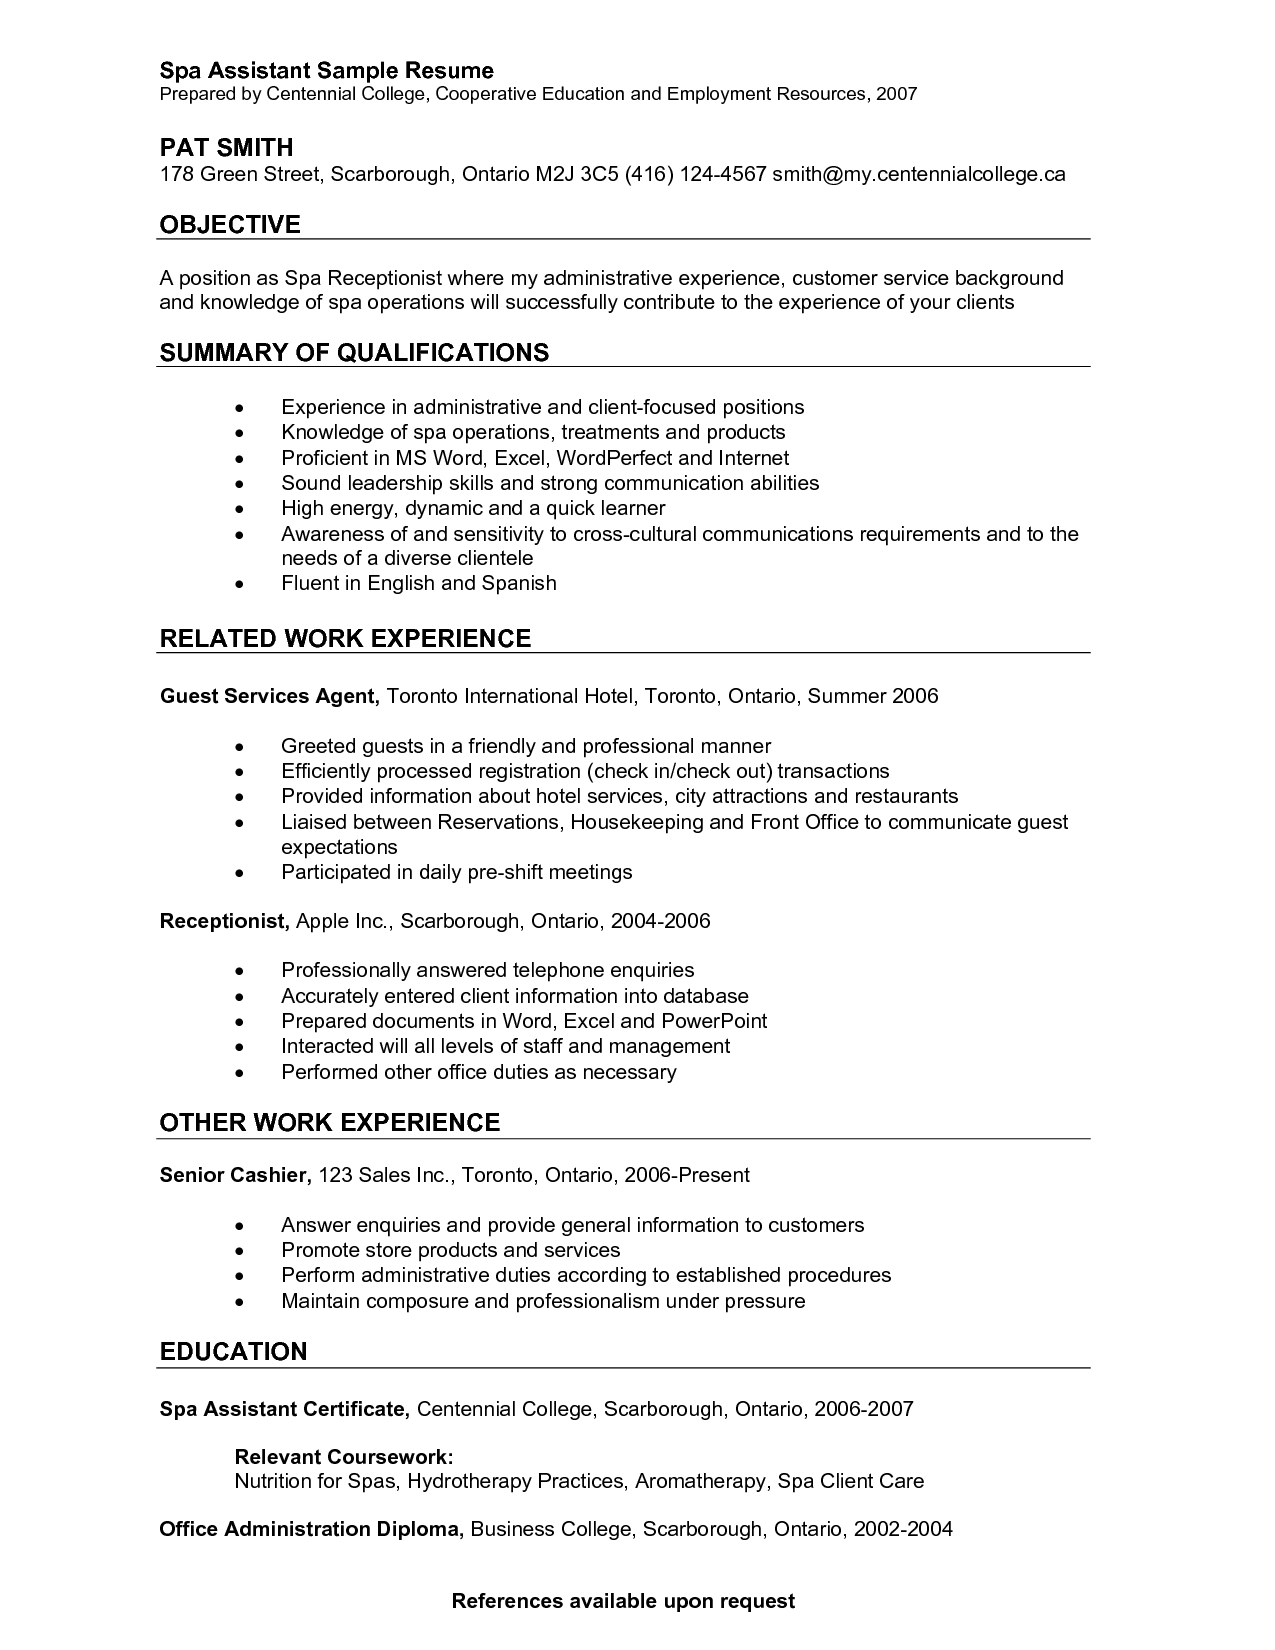 Receptionist Resume Objective | Medical Receptionist Resume Objective Samples Resume Pinterest